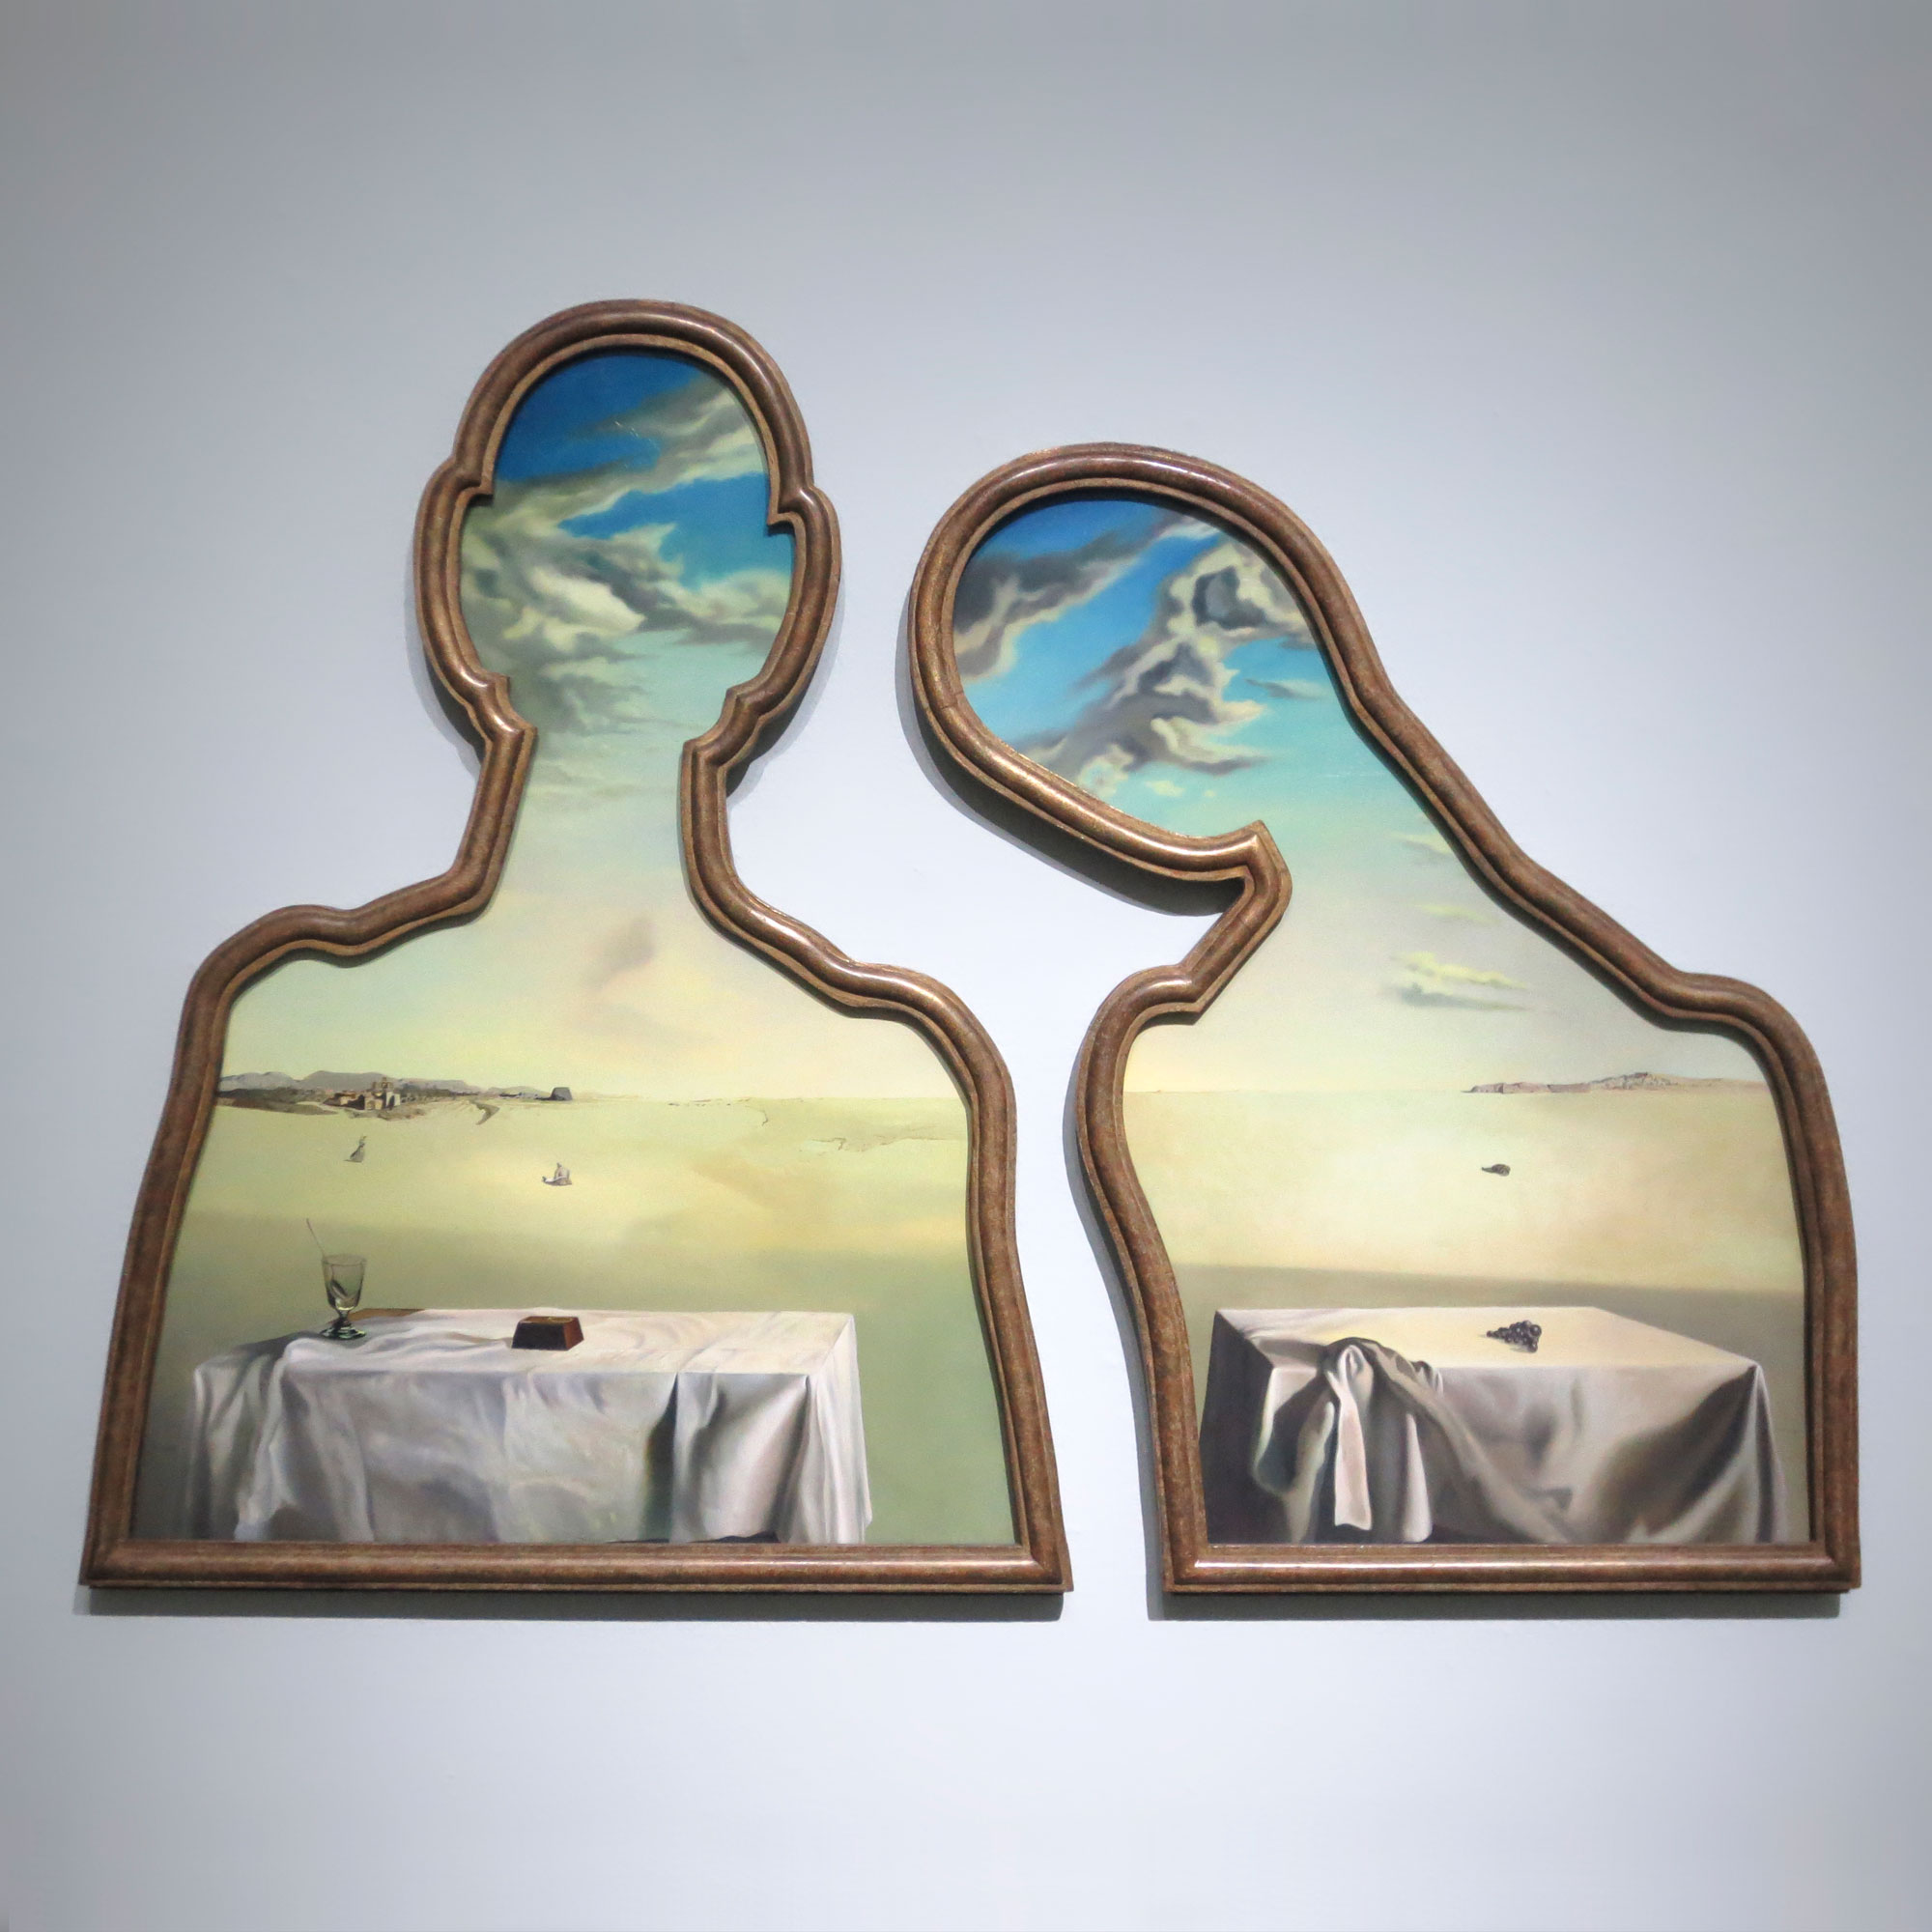 Salvador Dalí, A Couple With Their Heads Full of Clouds, 1936, Museum Boijmans Van Beuningen, Rotterdam (formerly collection E. James)